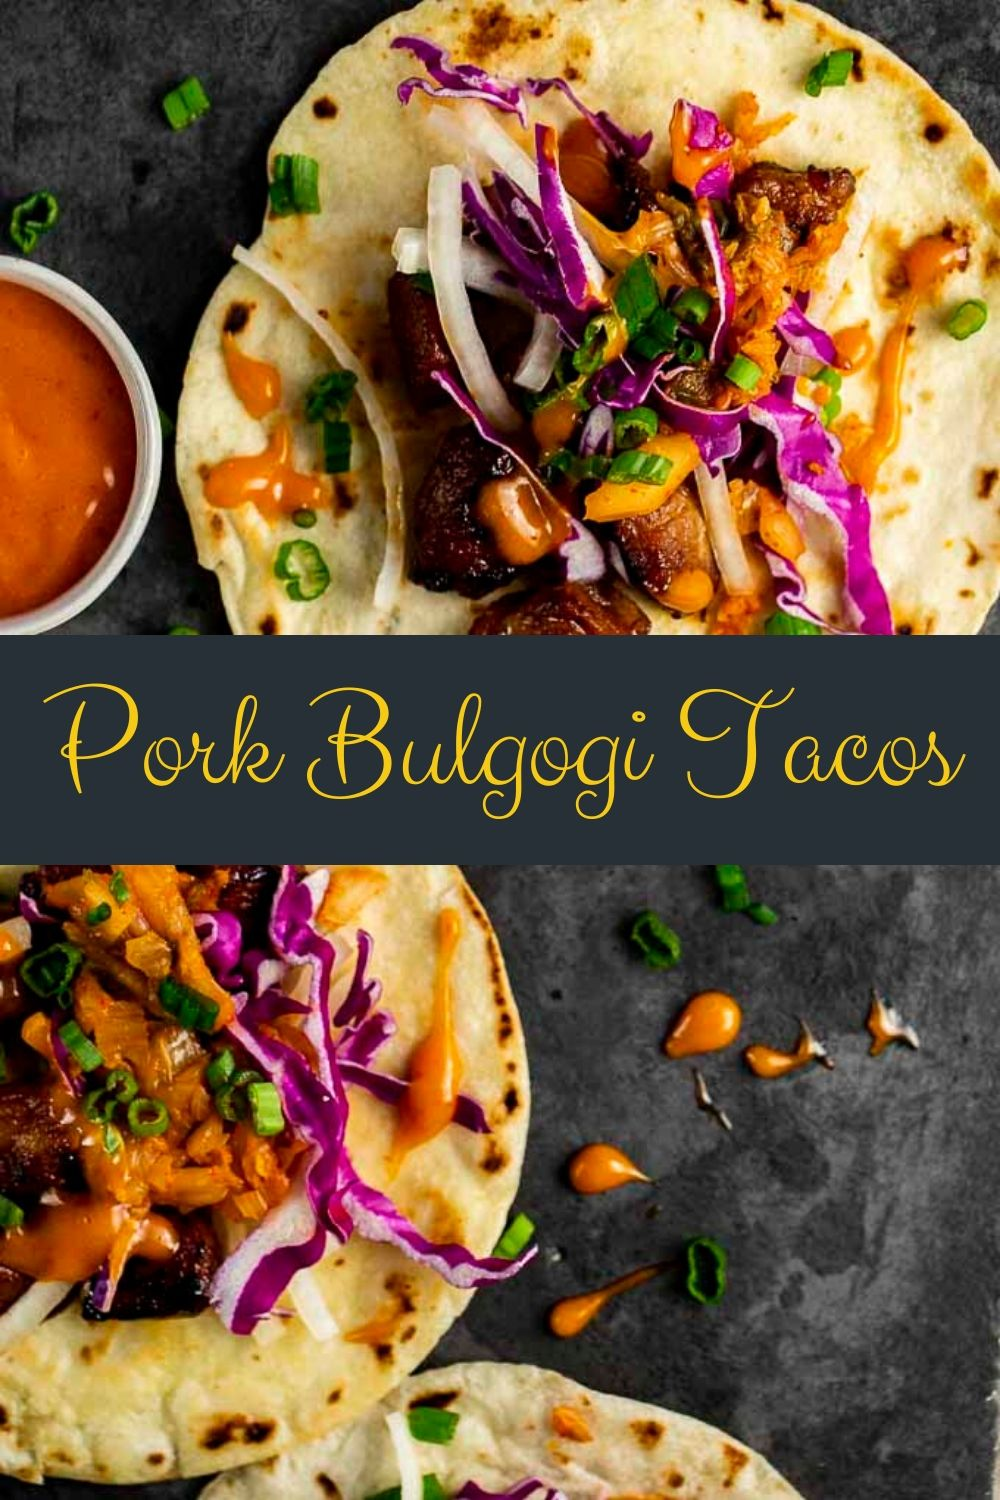 Spicy Korean Pork Bulgogi Tacos